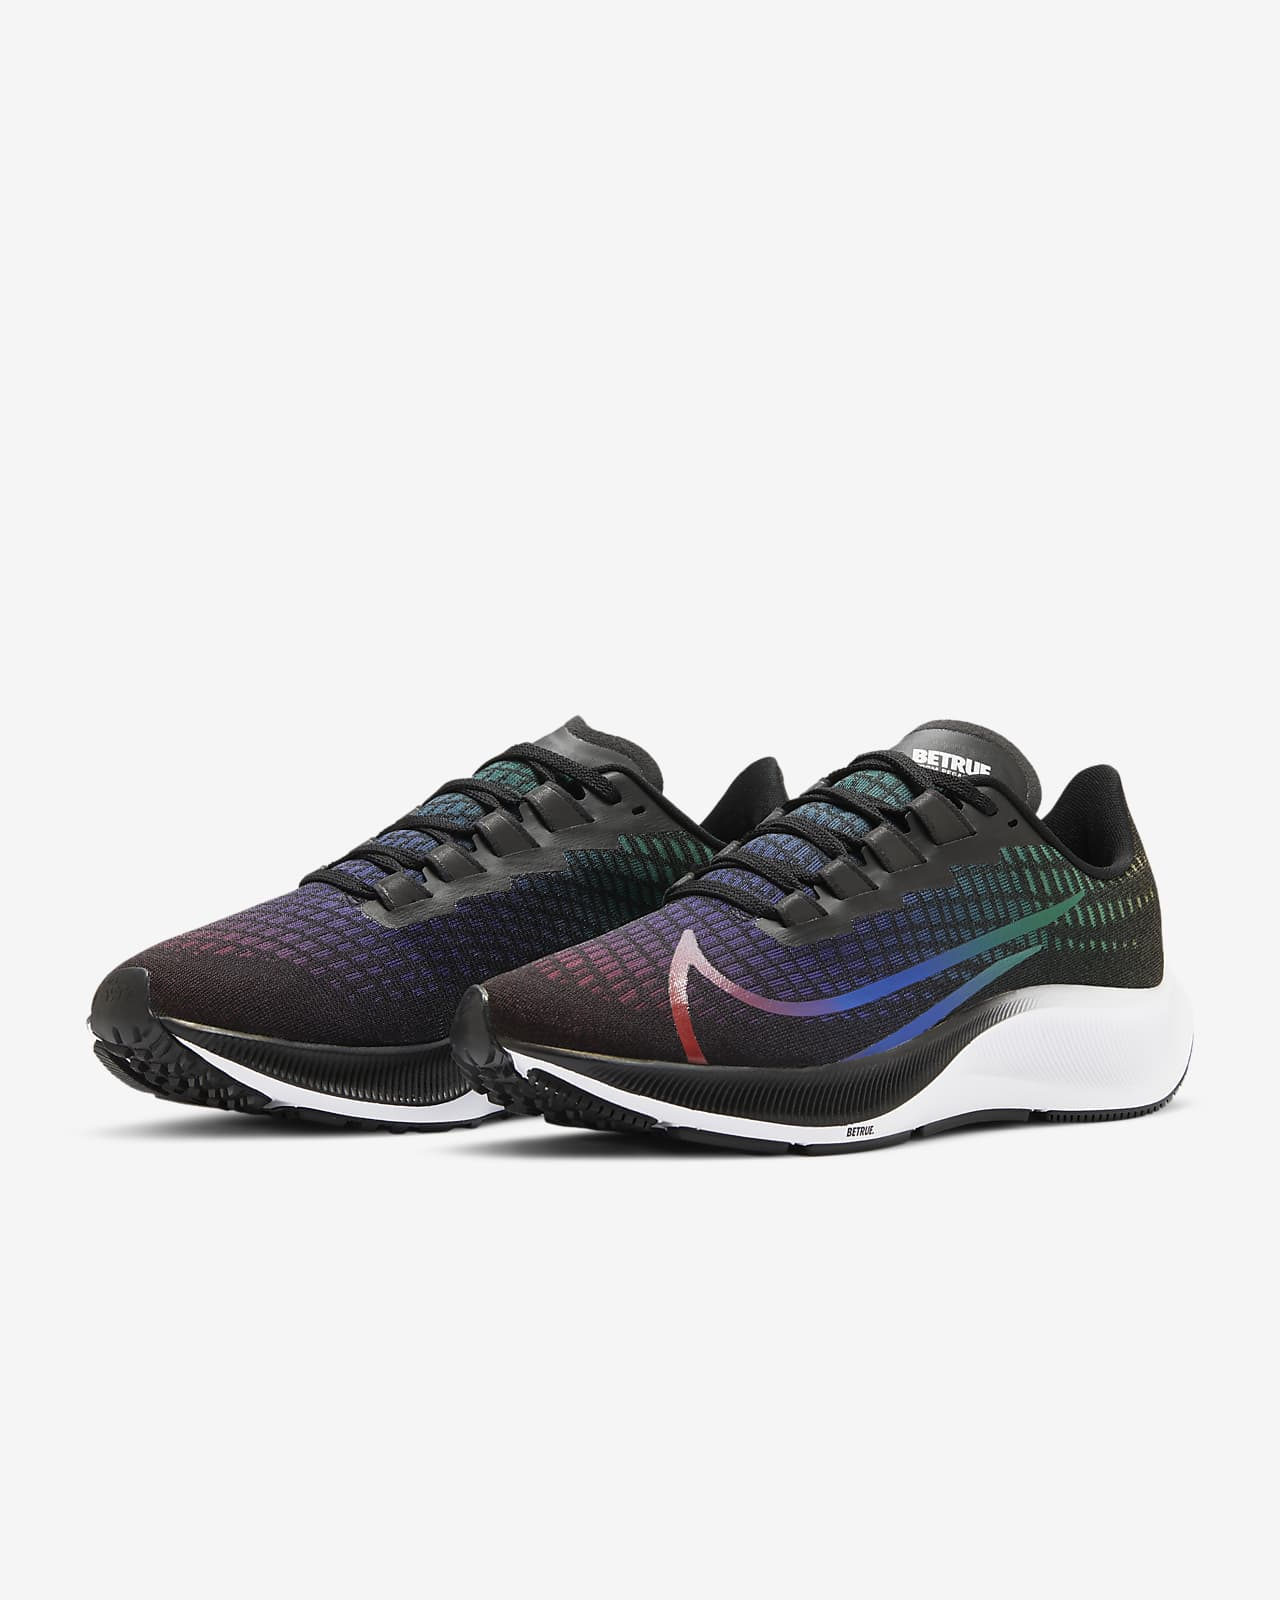 Nike Air Zoom Pegasus 37 BETRUE Damenschuh